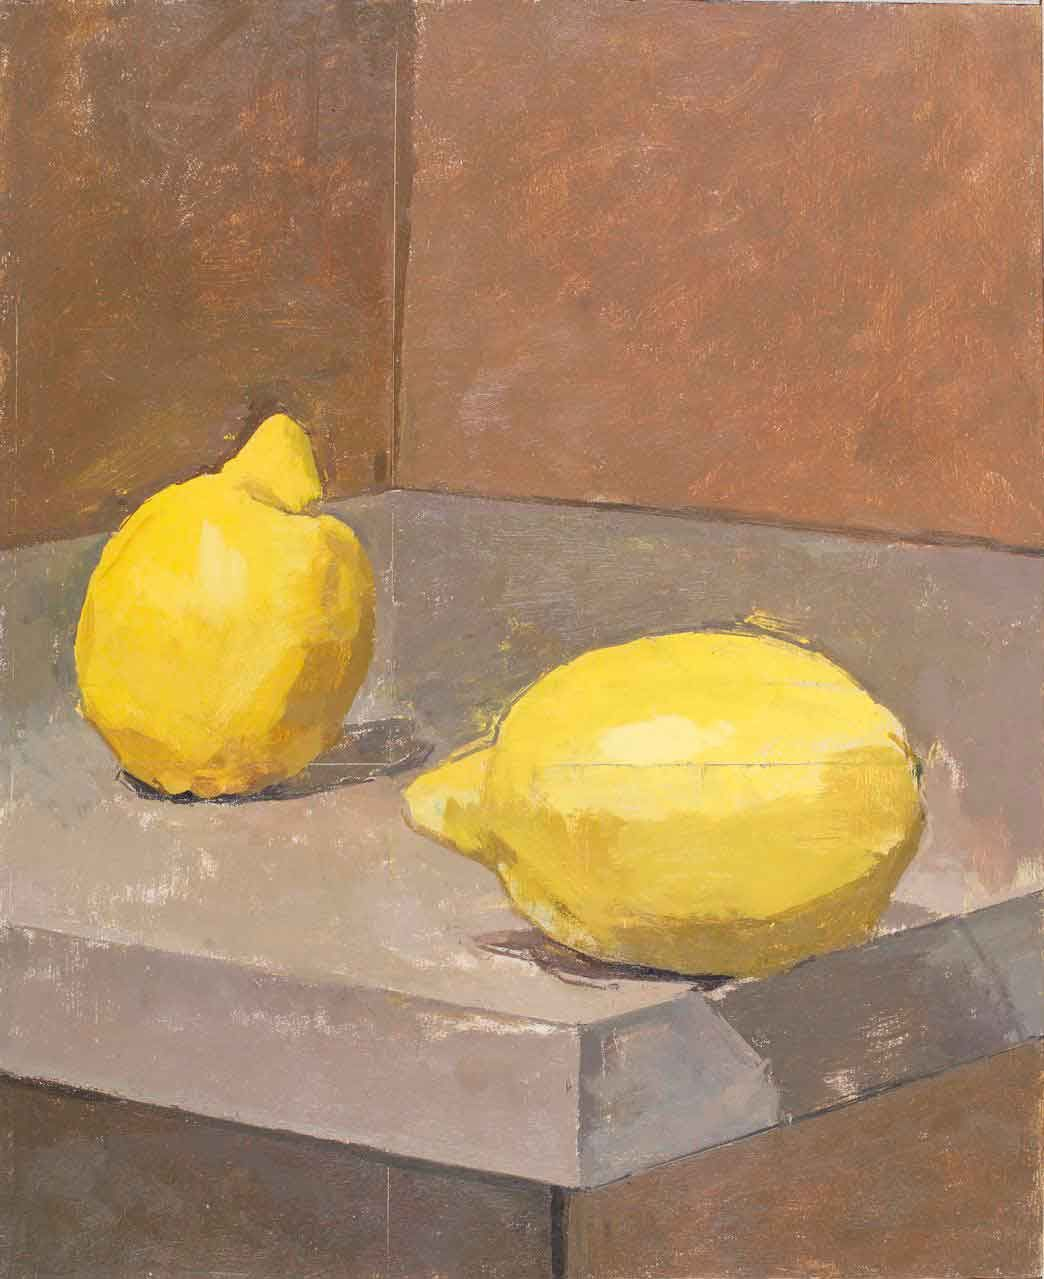 essay four life looking overlooked painting still Looking at the overlooked: four essays on still life looking at the overlooked: four four essays on still life painting one of the most enduring forms of western painting.